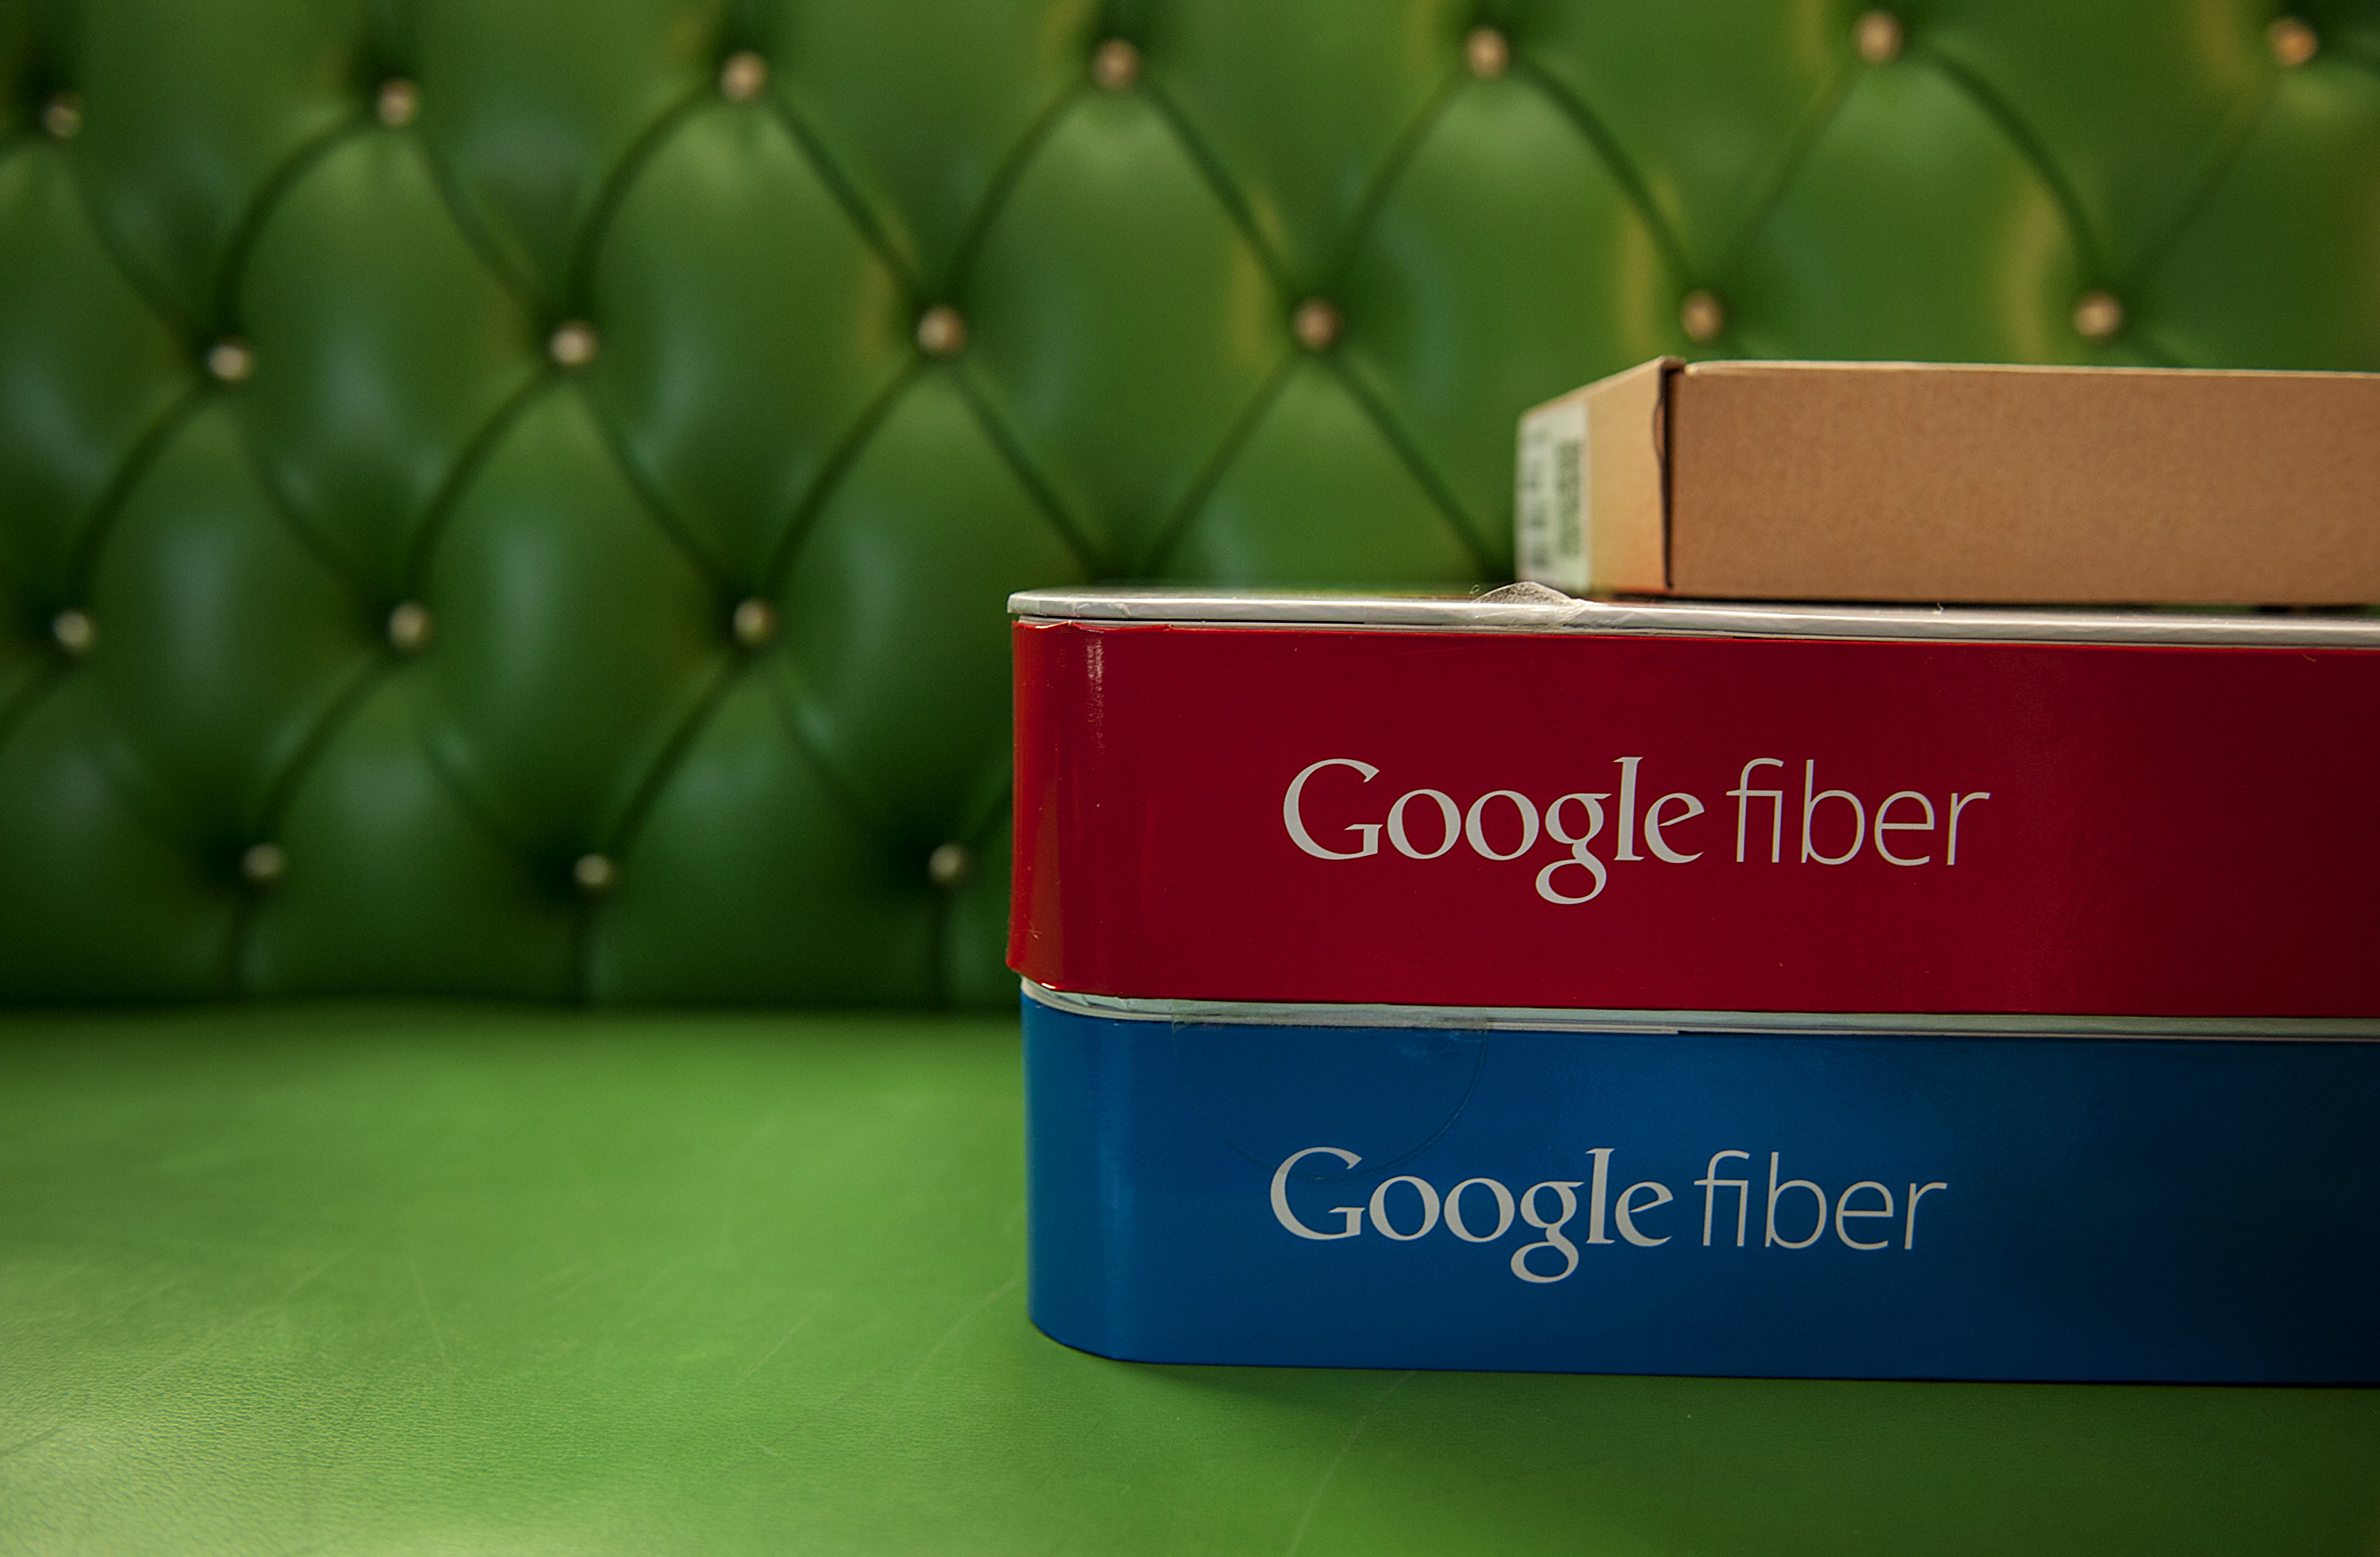 Boxes of equipment needed to install Google Fiber broadband network sit on a couch at the home of customer Becki Sherwood in Kansas City, Kansas, U.S., on Tuesday, Nov. 27, 2012.